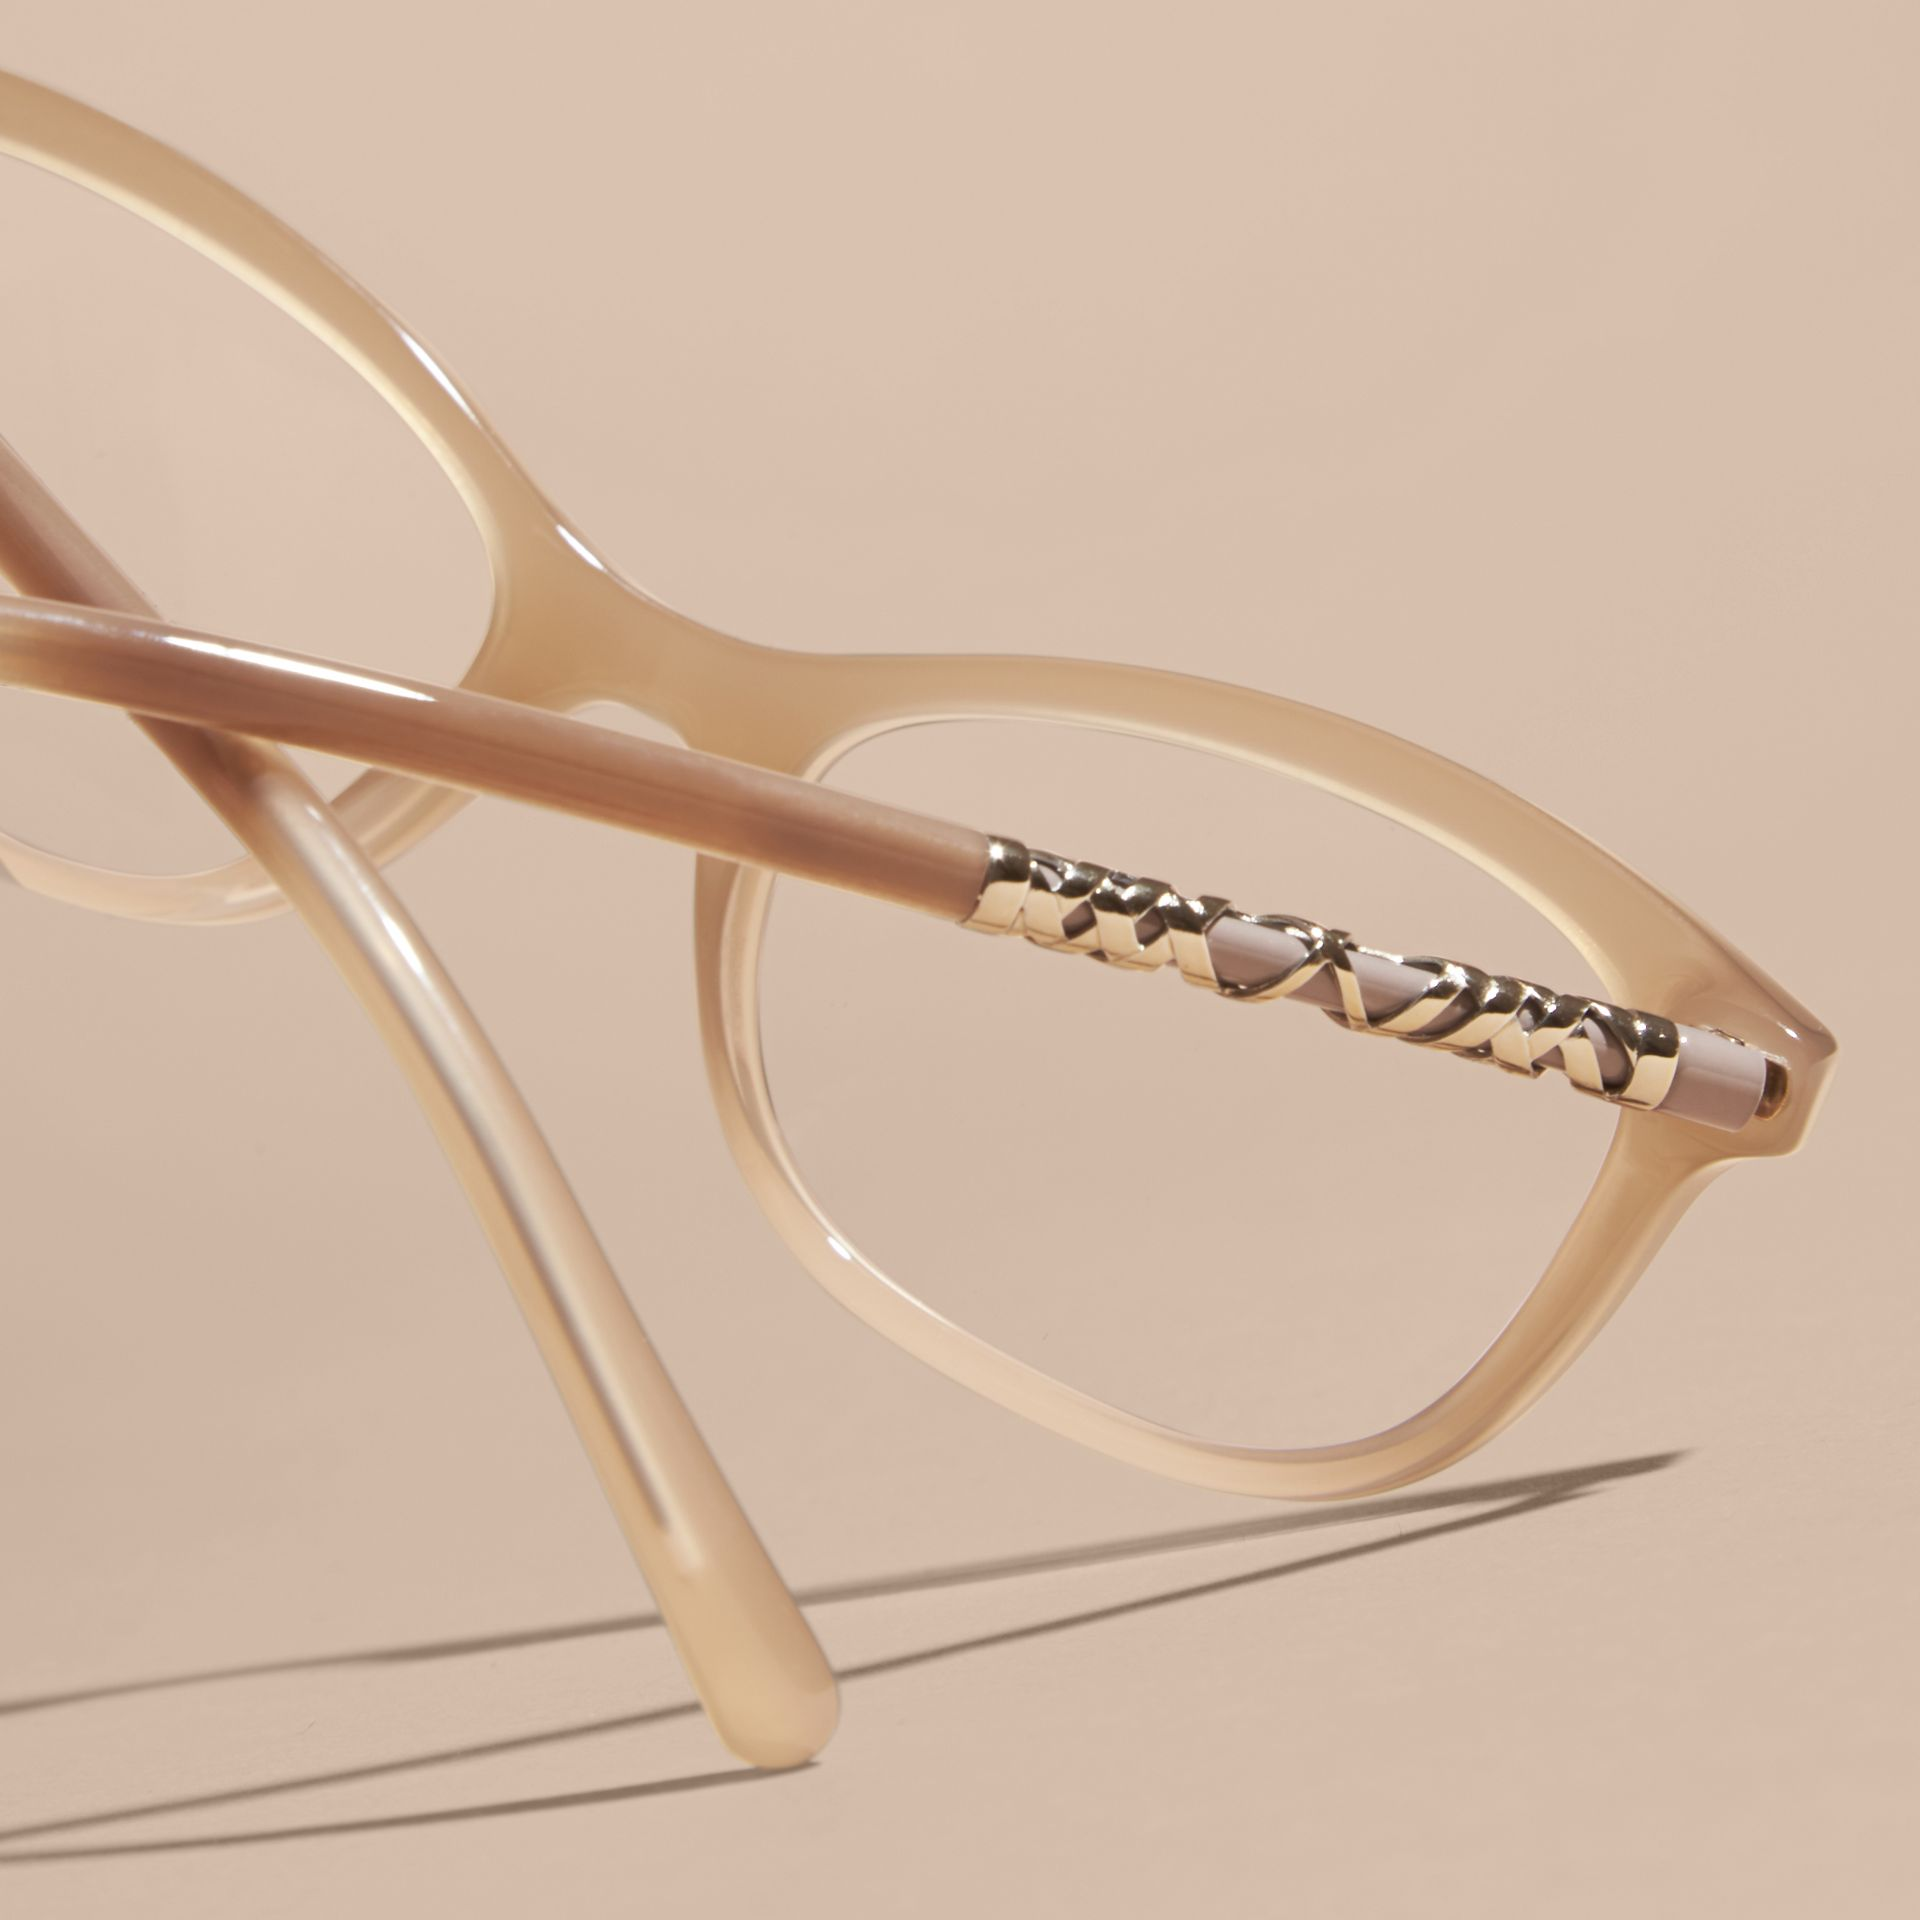 Chino grey Check Detail Oval Optical Frames Chino Grey - gallery image 5